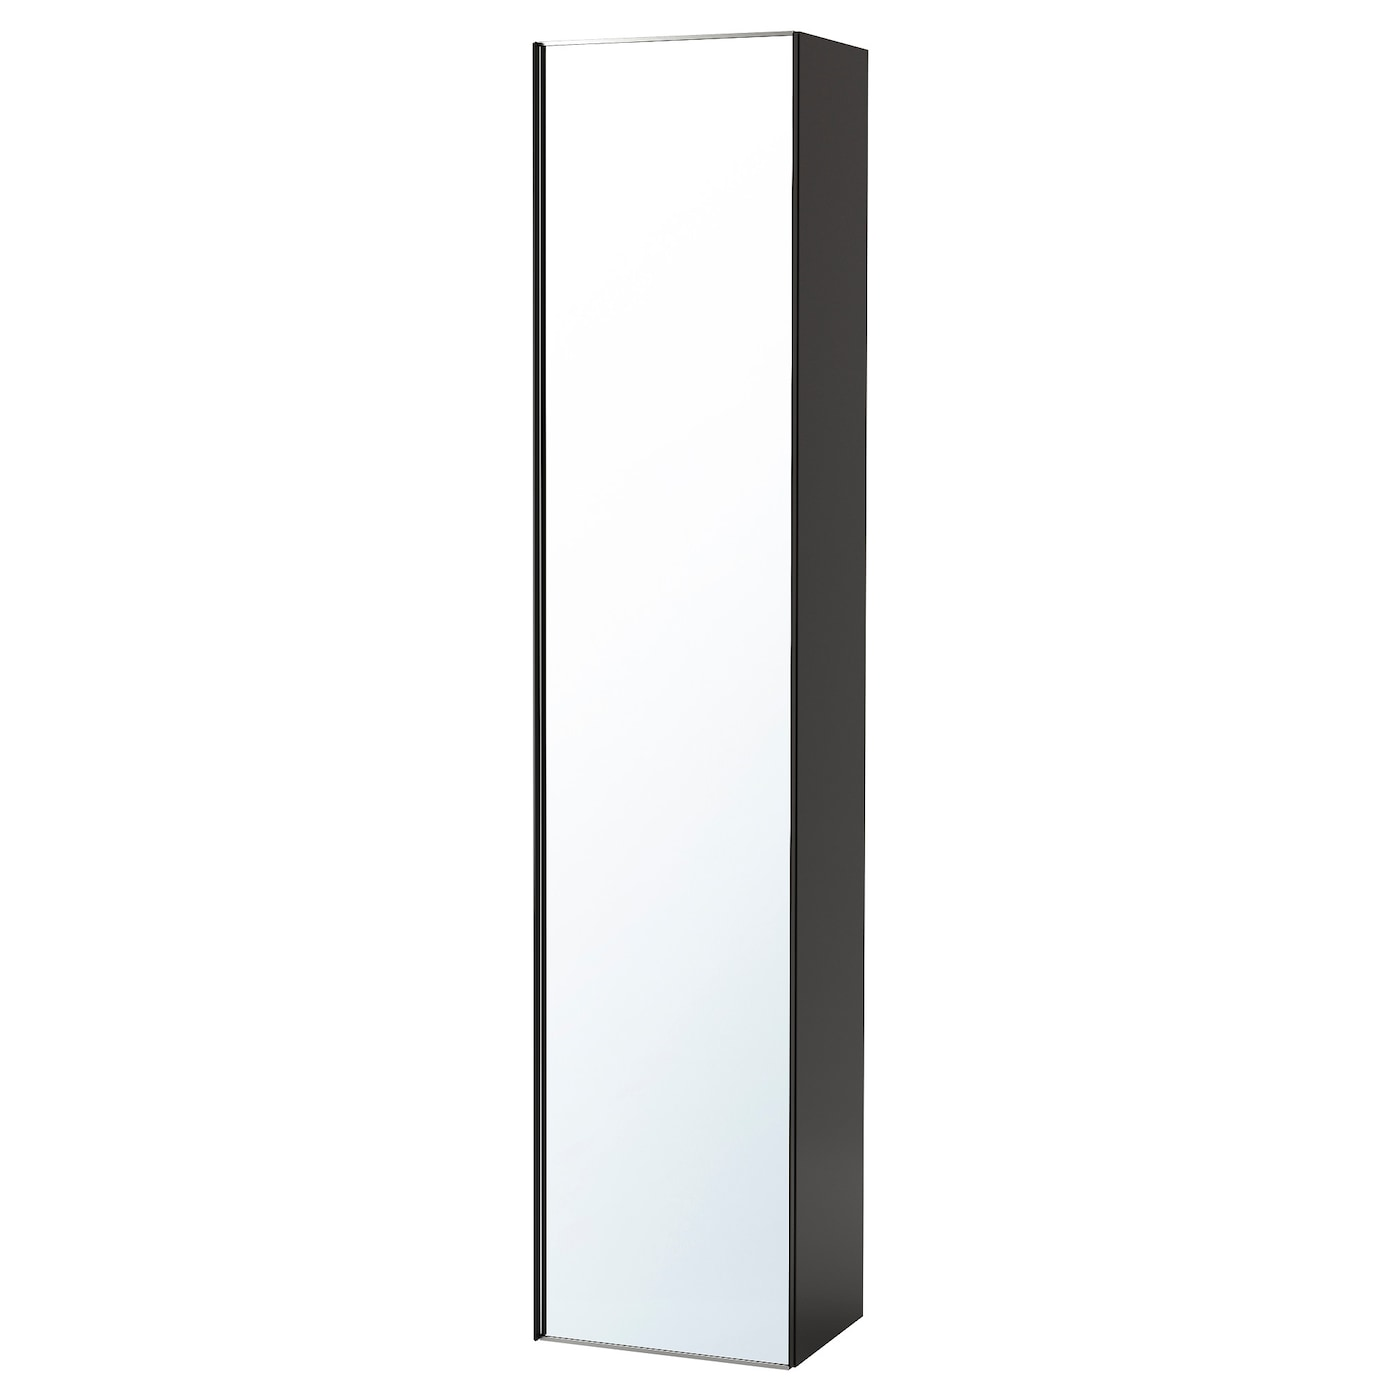 Godmorgon high cabinet with mirror door high gloss grey for Meuble mural godmorgon